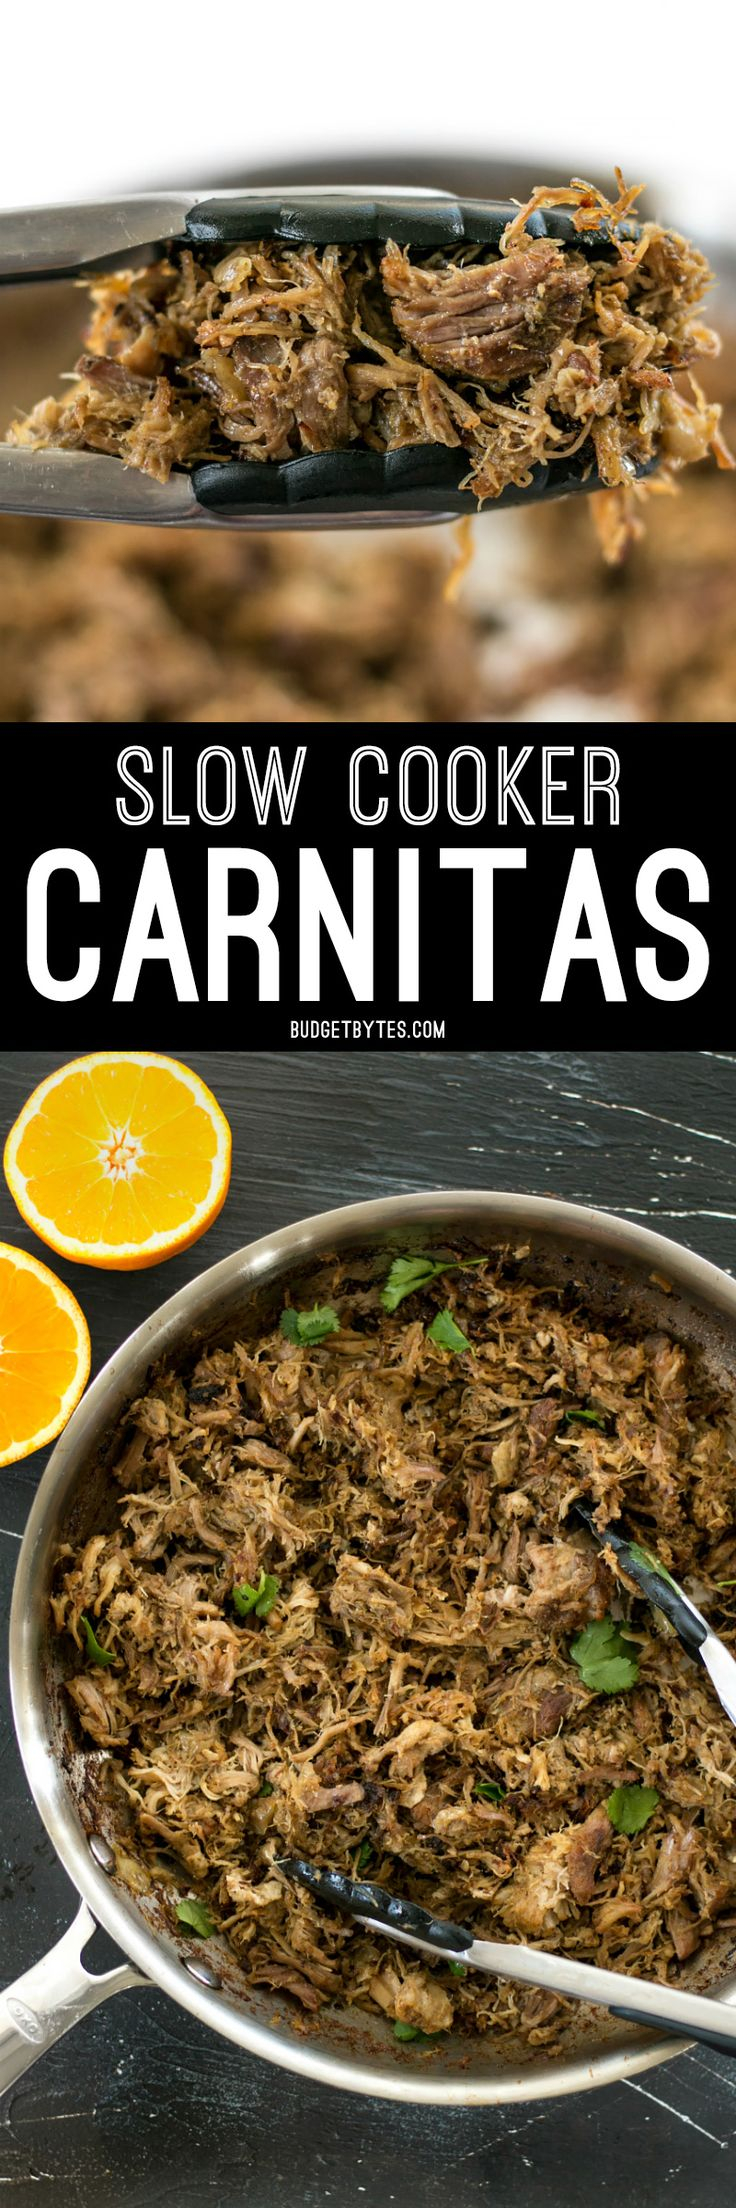 Warm spices, fresh orange essence, and a low slow cook time makes this Slow Cooker Carnitas tender, juicy, and full of flavor. @budgetbytes